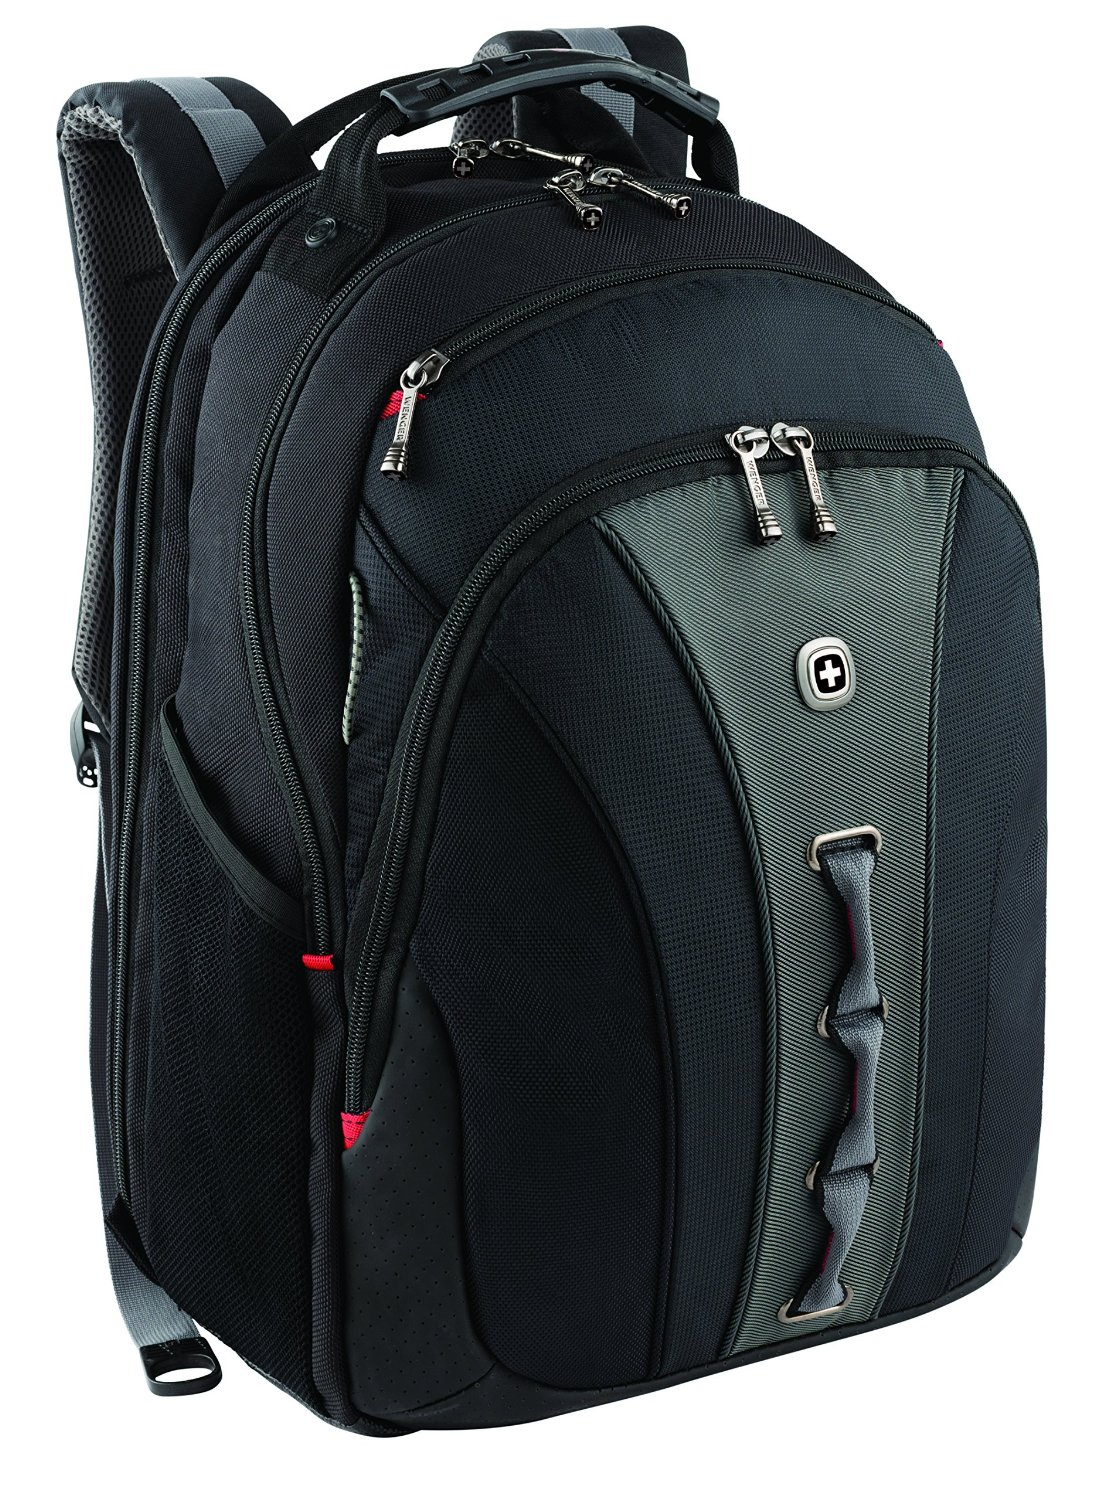 15 Best Backpacks